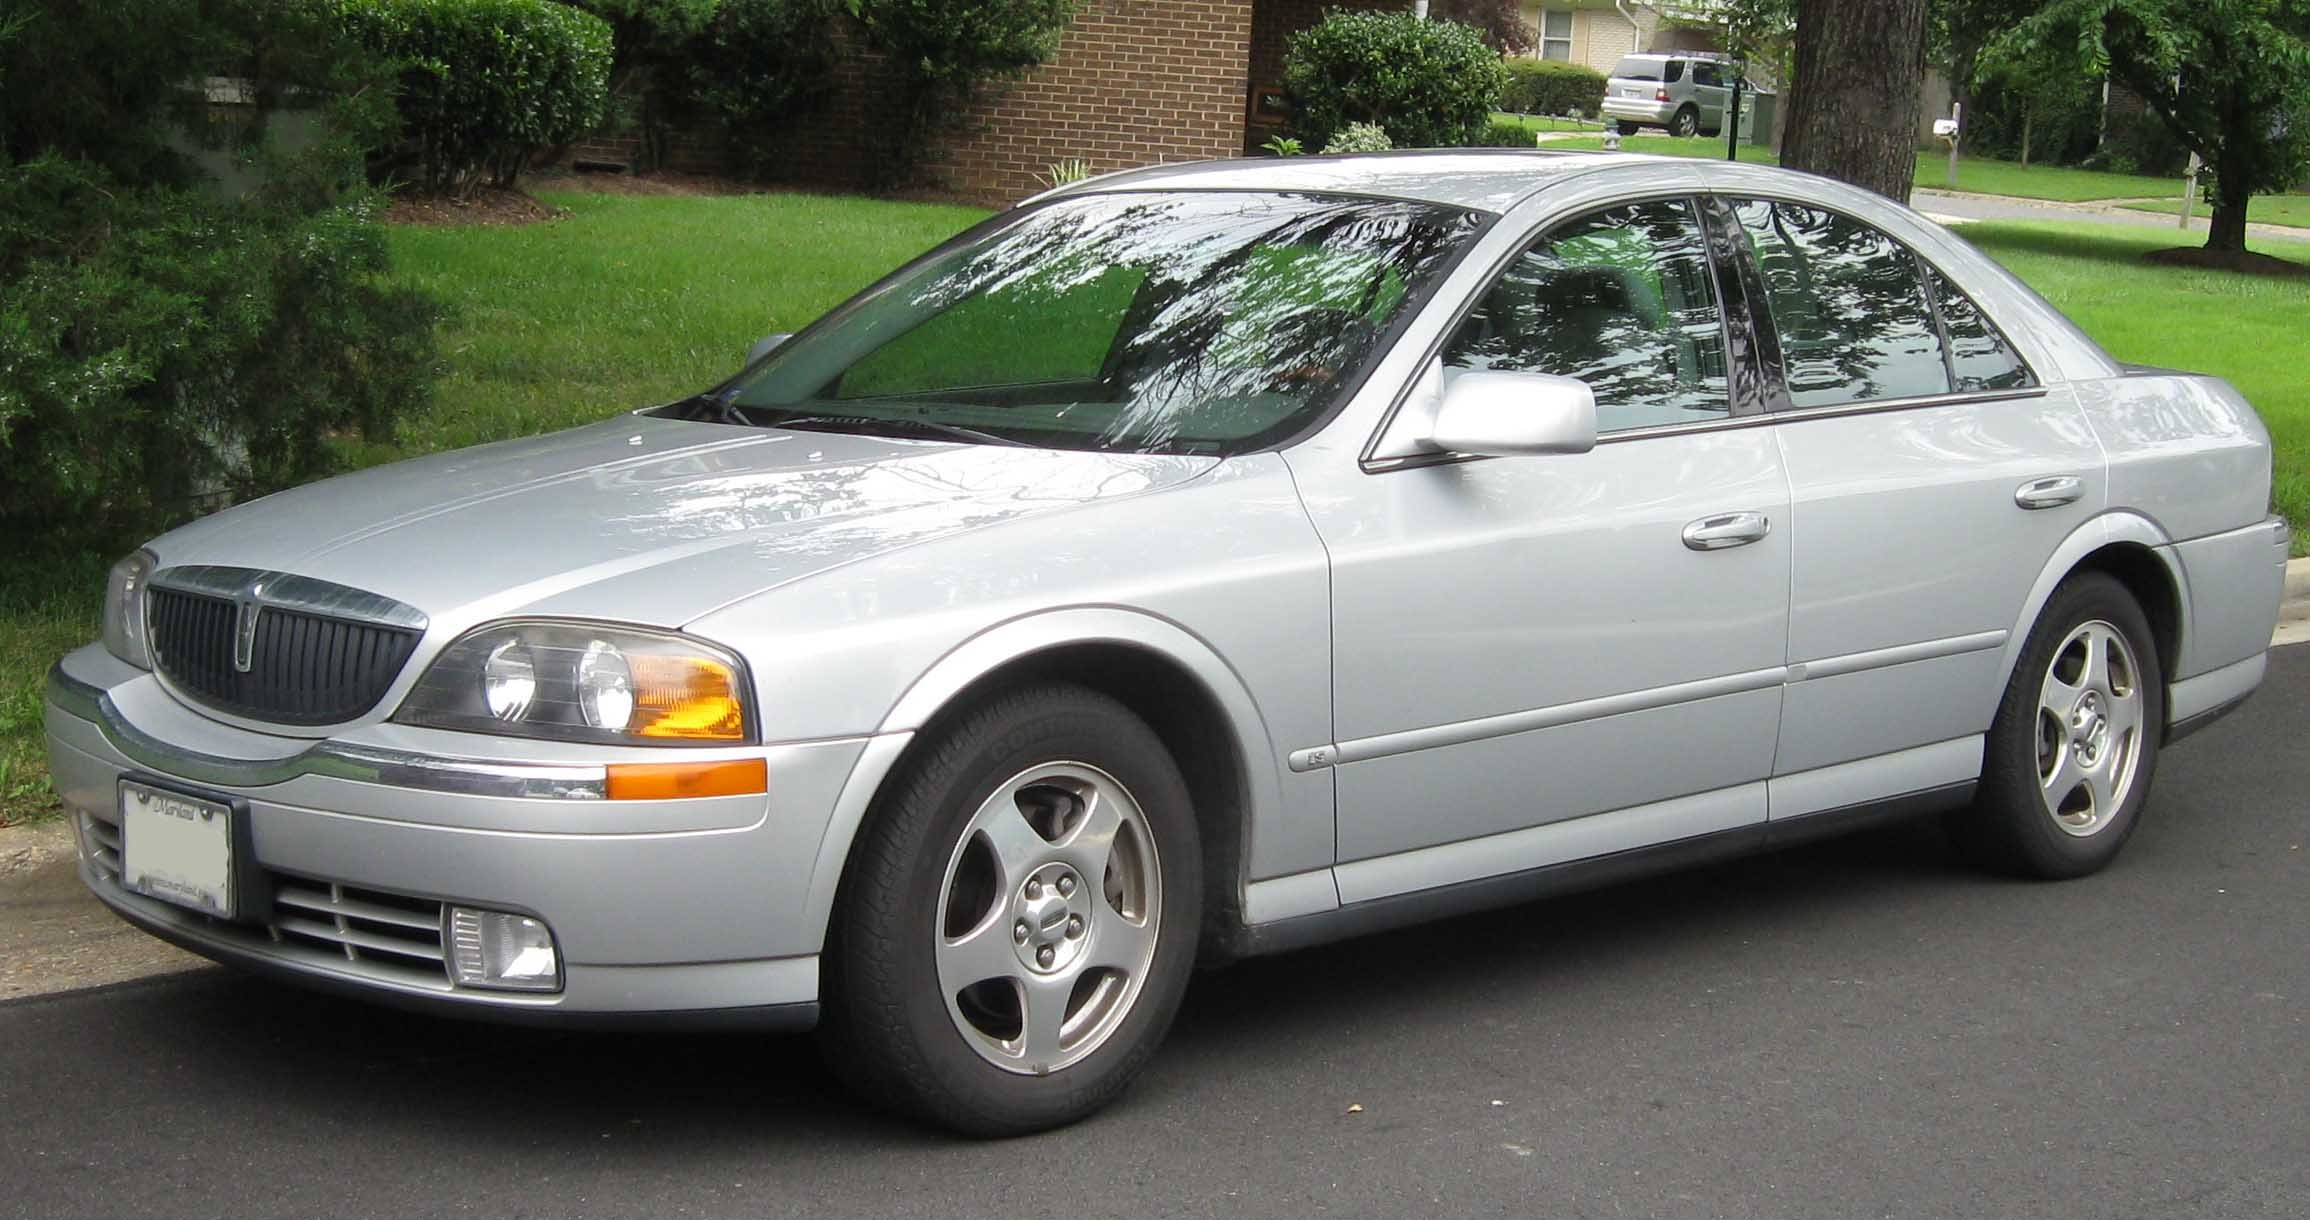 2000 Lincoln Ls V8 Engine Diagram 2003 Lincoln Ls Information and Photos Zombiedrive Of 2000 Lincoln Ls V8 Engine Diagram Wiring Diagram 2001 Lincoln Ls Rear Worksheet and Wiring Diagram •